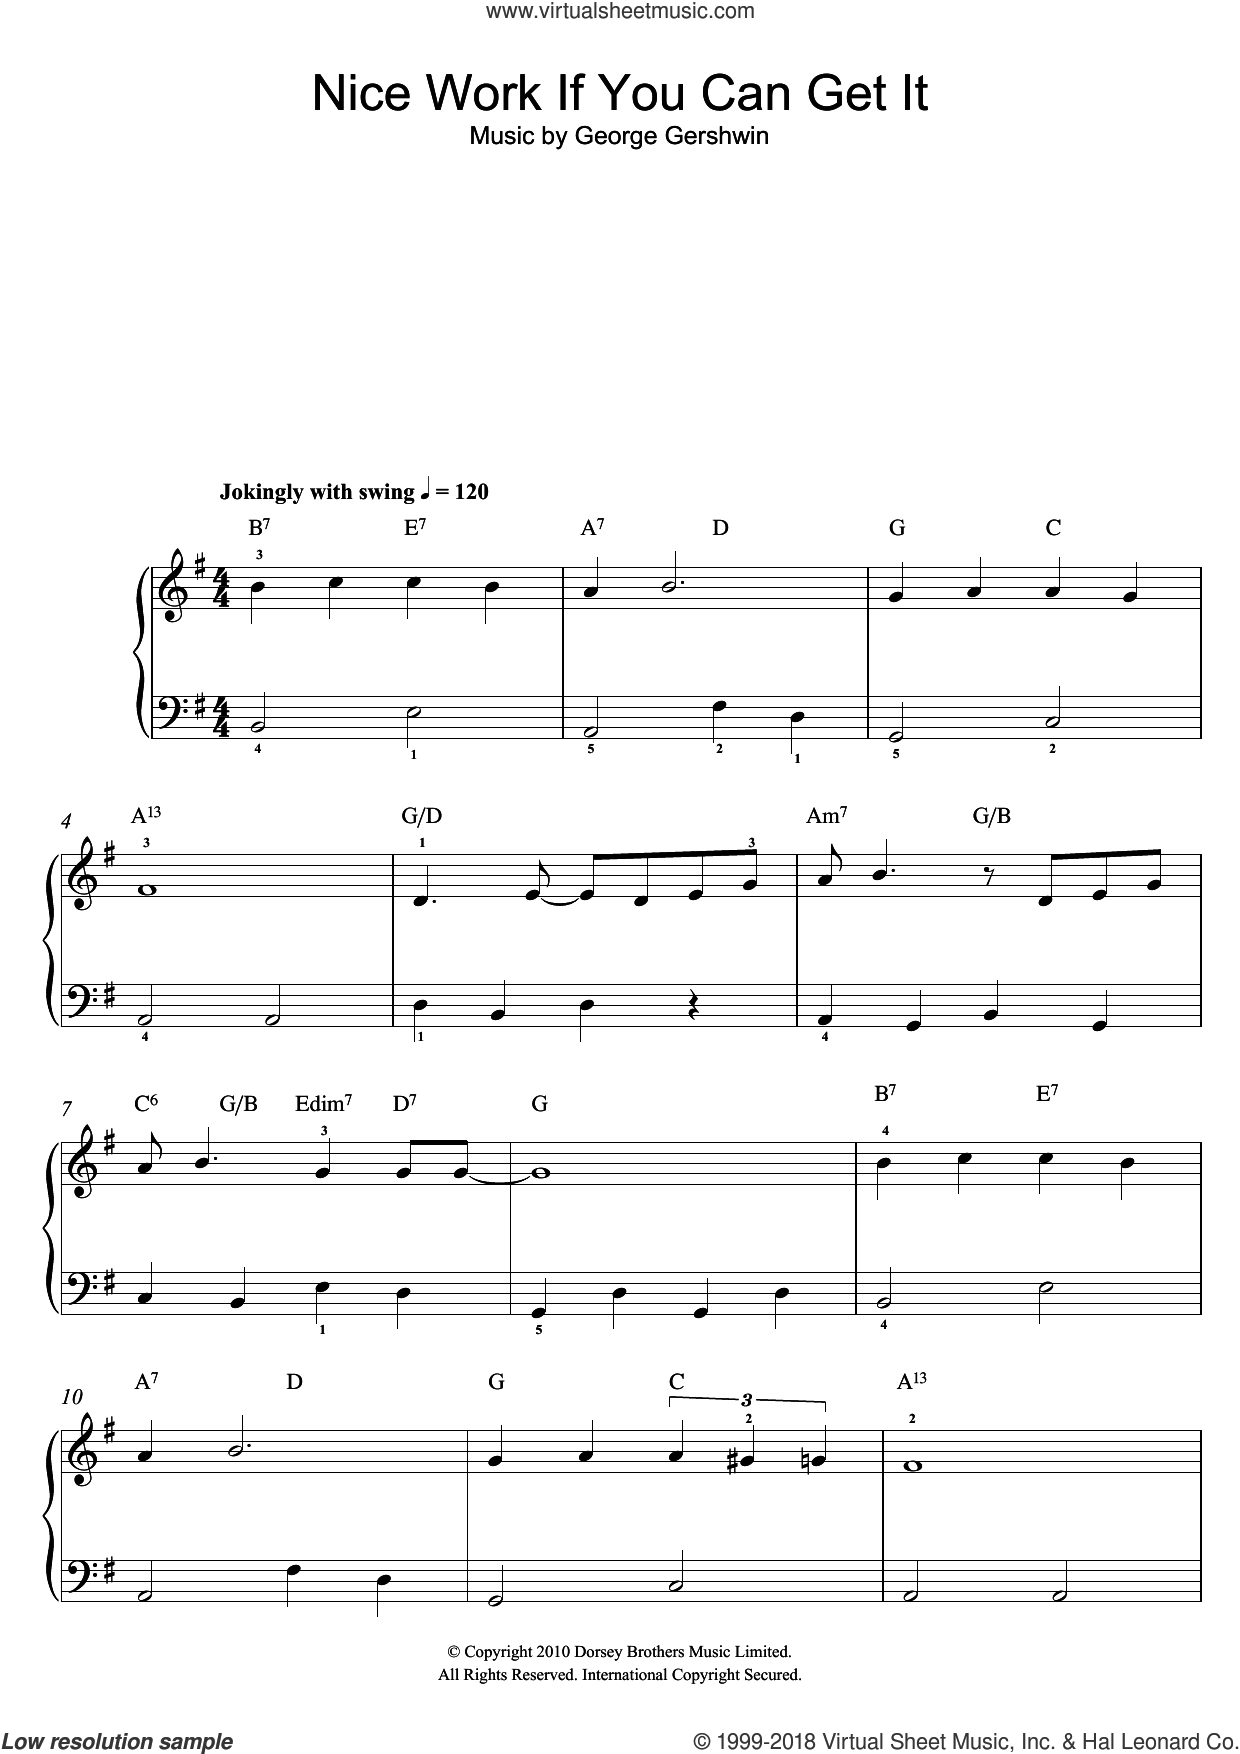 Nice Work If You Can Get It, (easy) sheet music for piano solo by George Gershwin, easy skill level